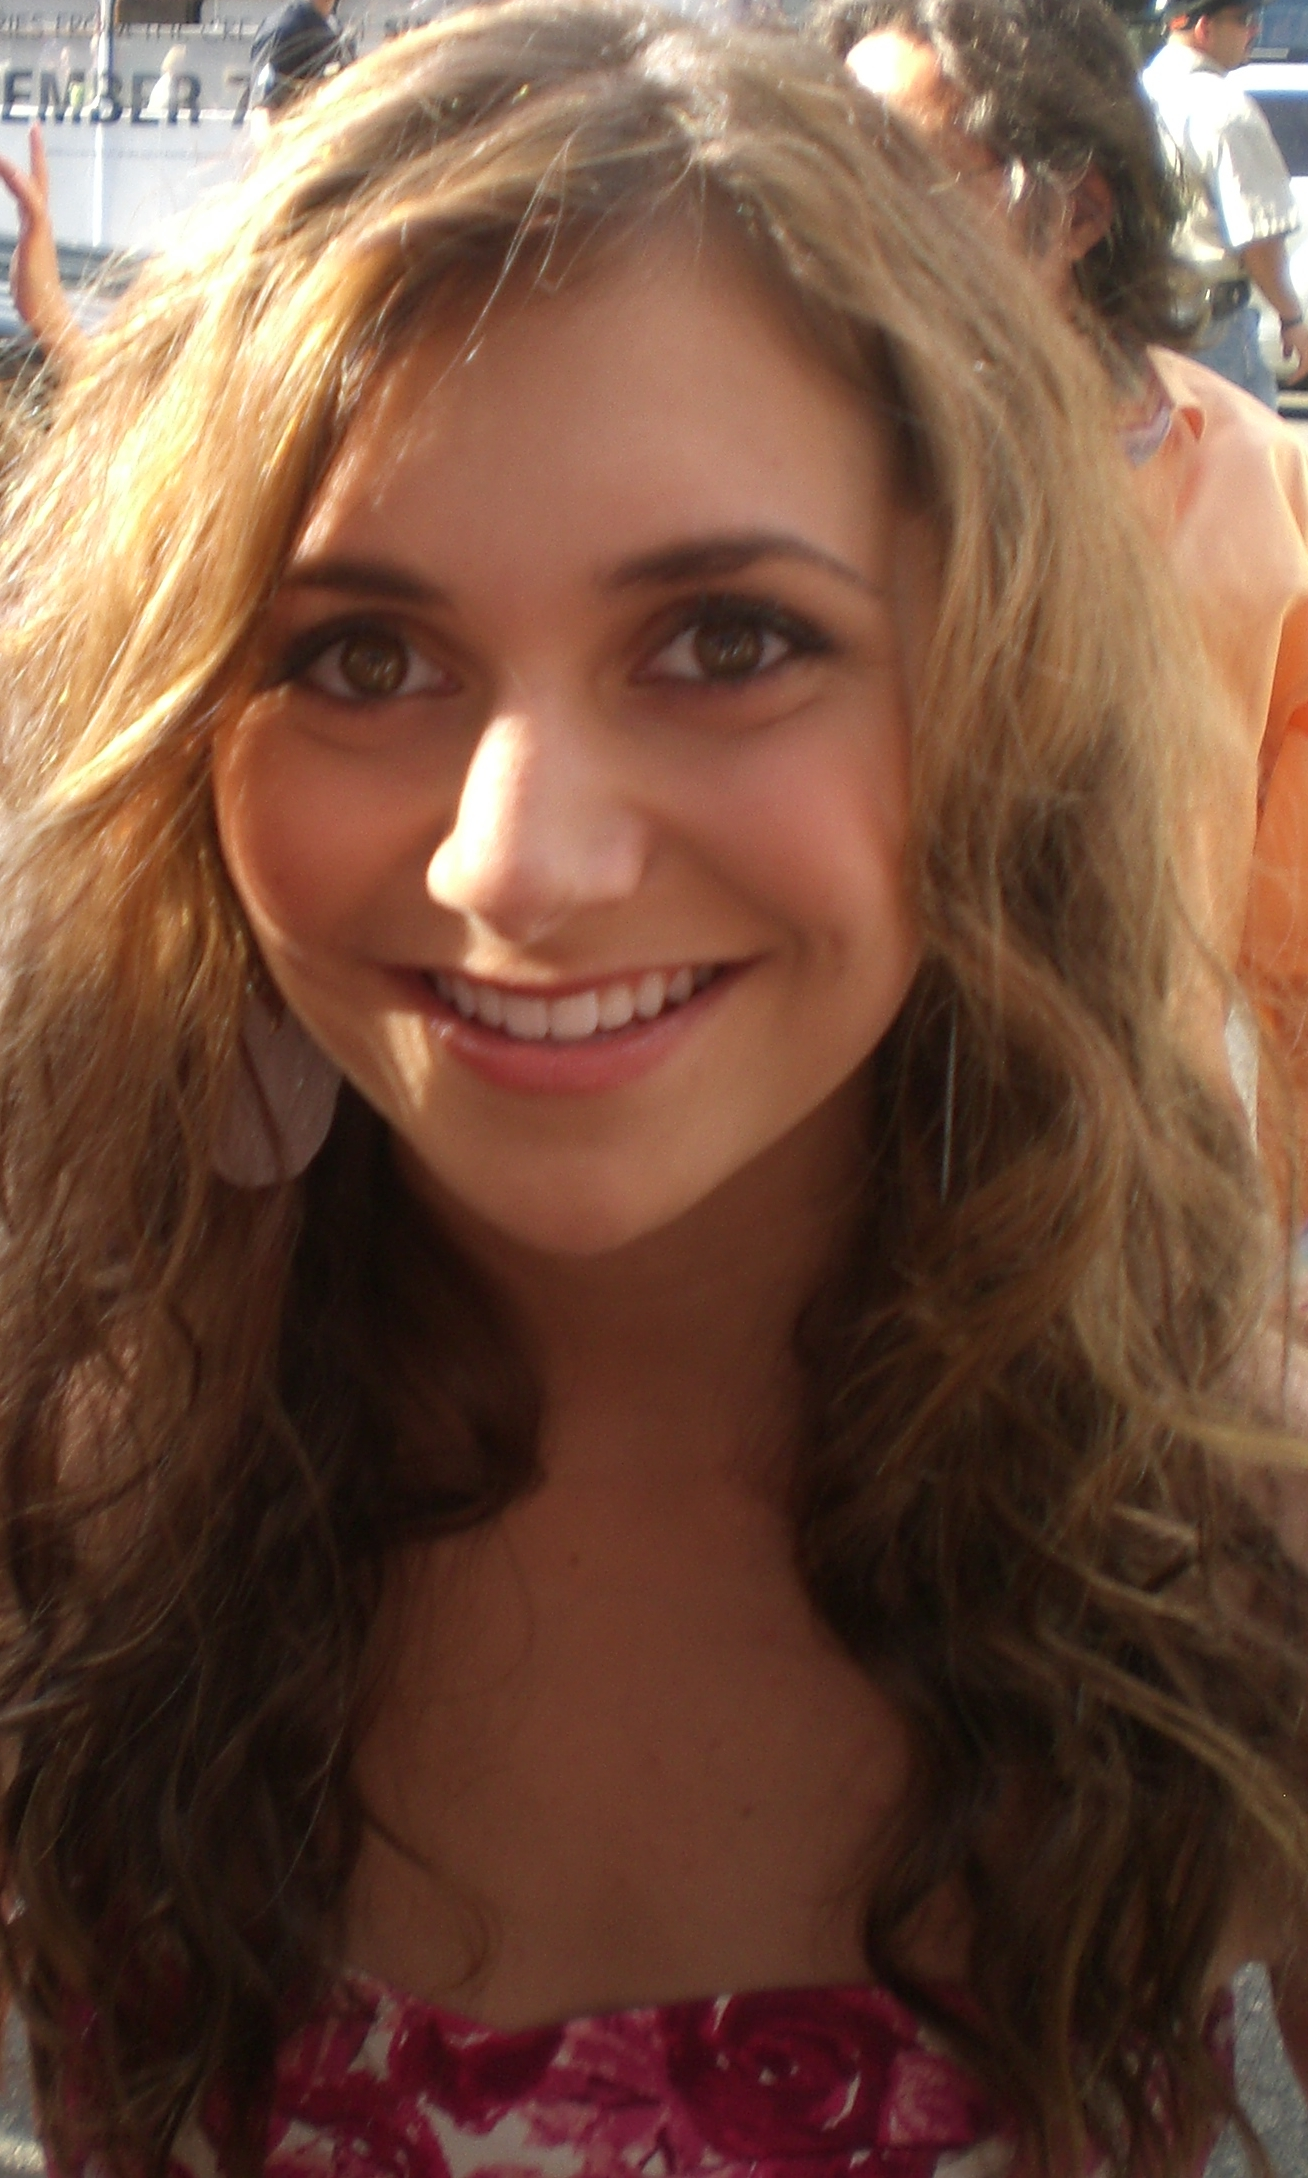 The 25-year old daughter of father LuAnne Hodges Stoner and mother Charlie Stoner Alyson Stoner in 2018 photo. Alyson Stoner earned a  million dollar salary - leaving the net worth at 1.5 million in 2018